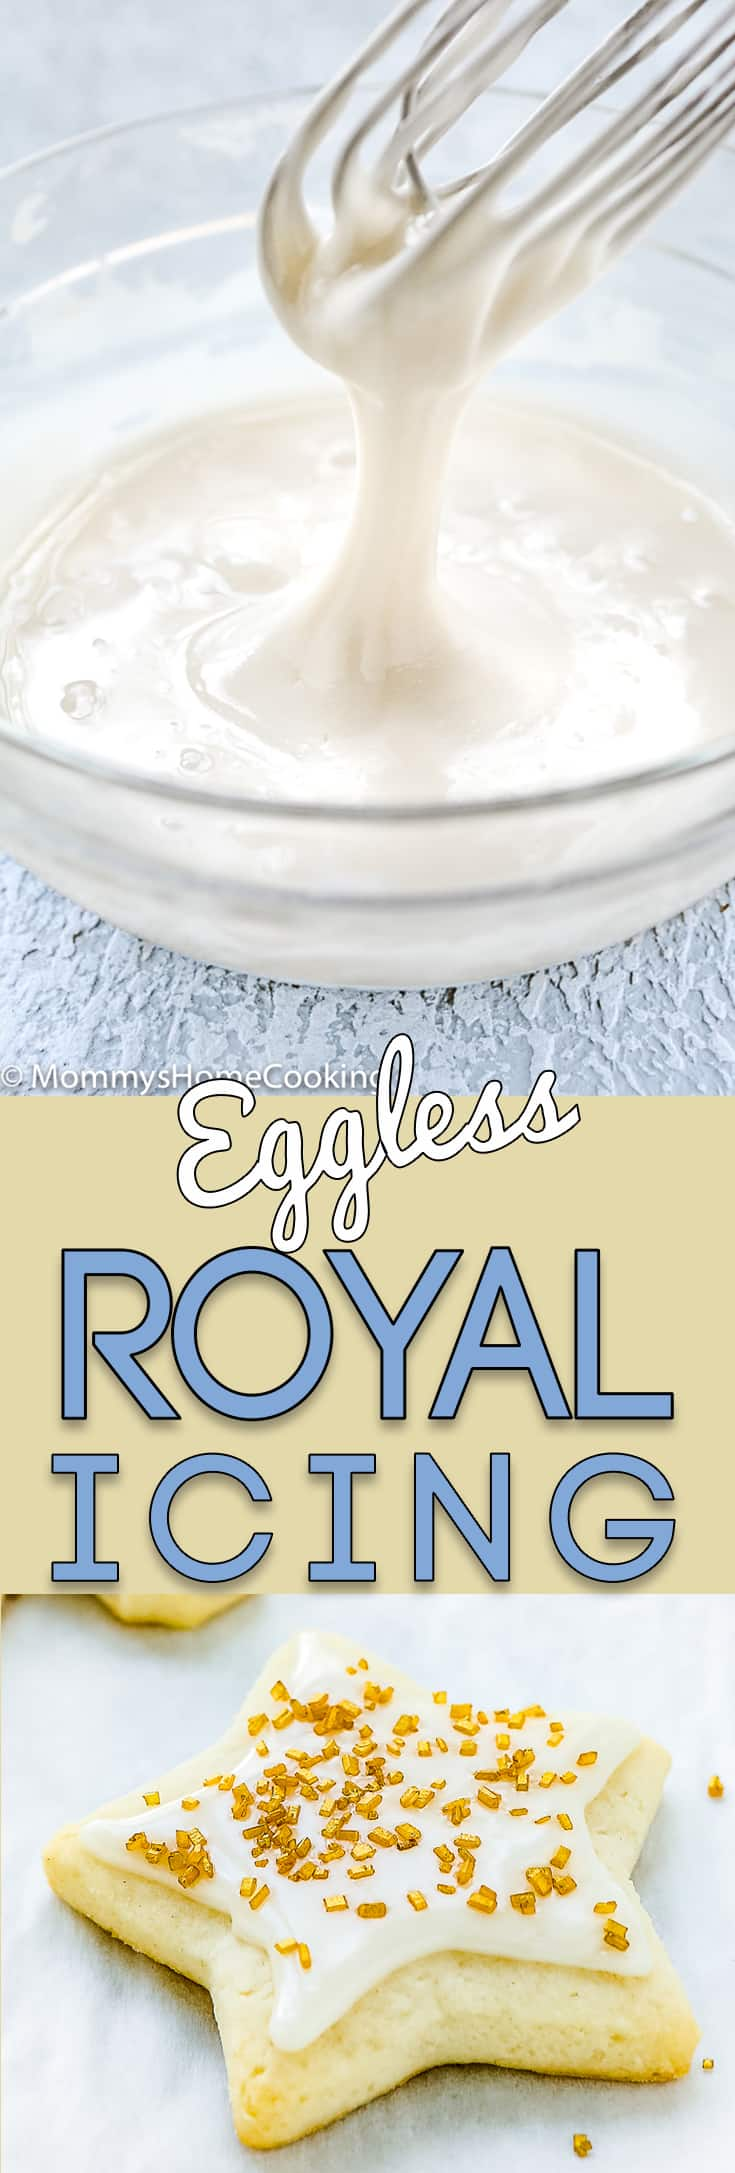 This Eggless Royal Icing is for perfect decorating cookies! With a subtle lemony taste, it's great for anything from sugar cookies to drawing decorative shapes or gluing together a gingerbread house. It hardens when it dries so decorations stay in place. https://mommyshomecooking.com